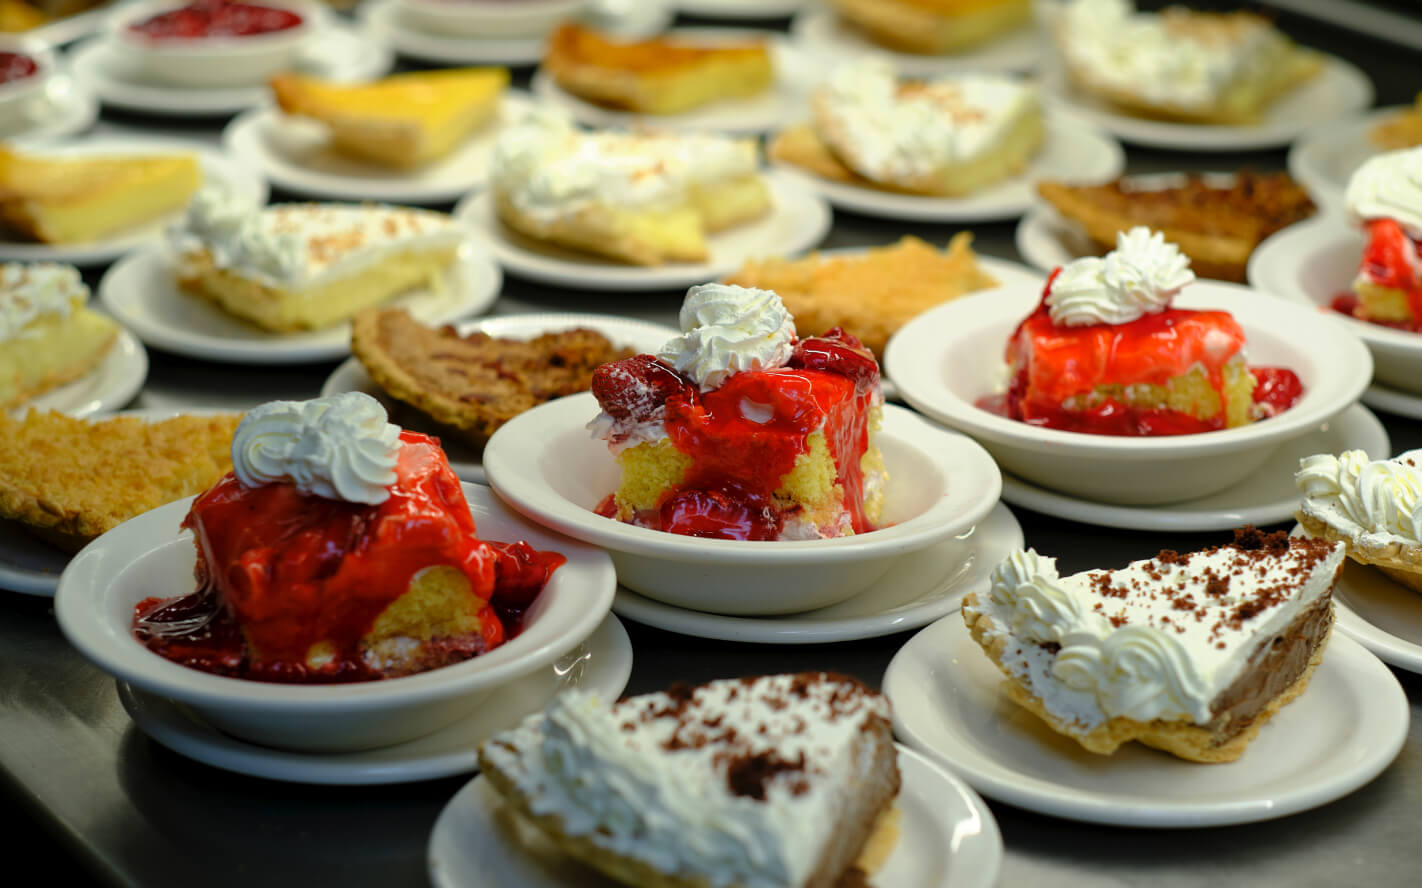 Various kinds of pie and desserts on food line